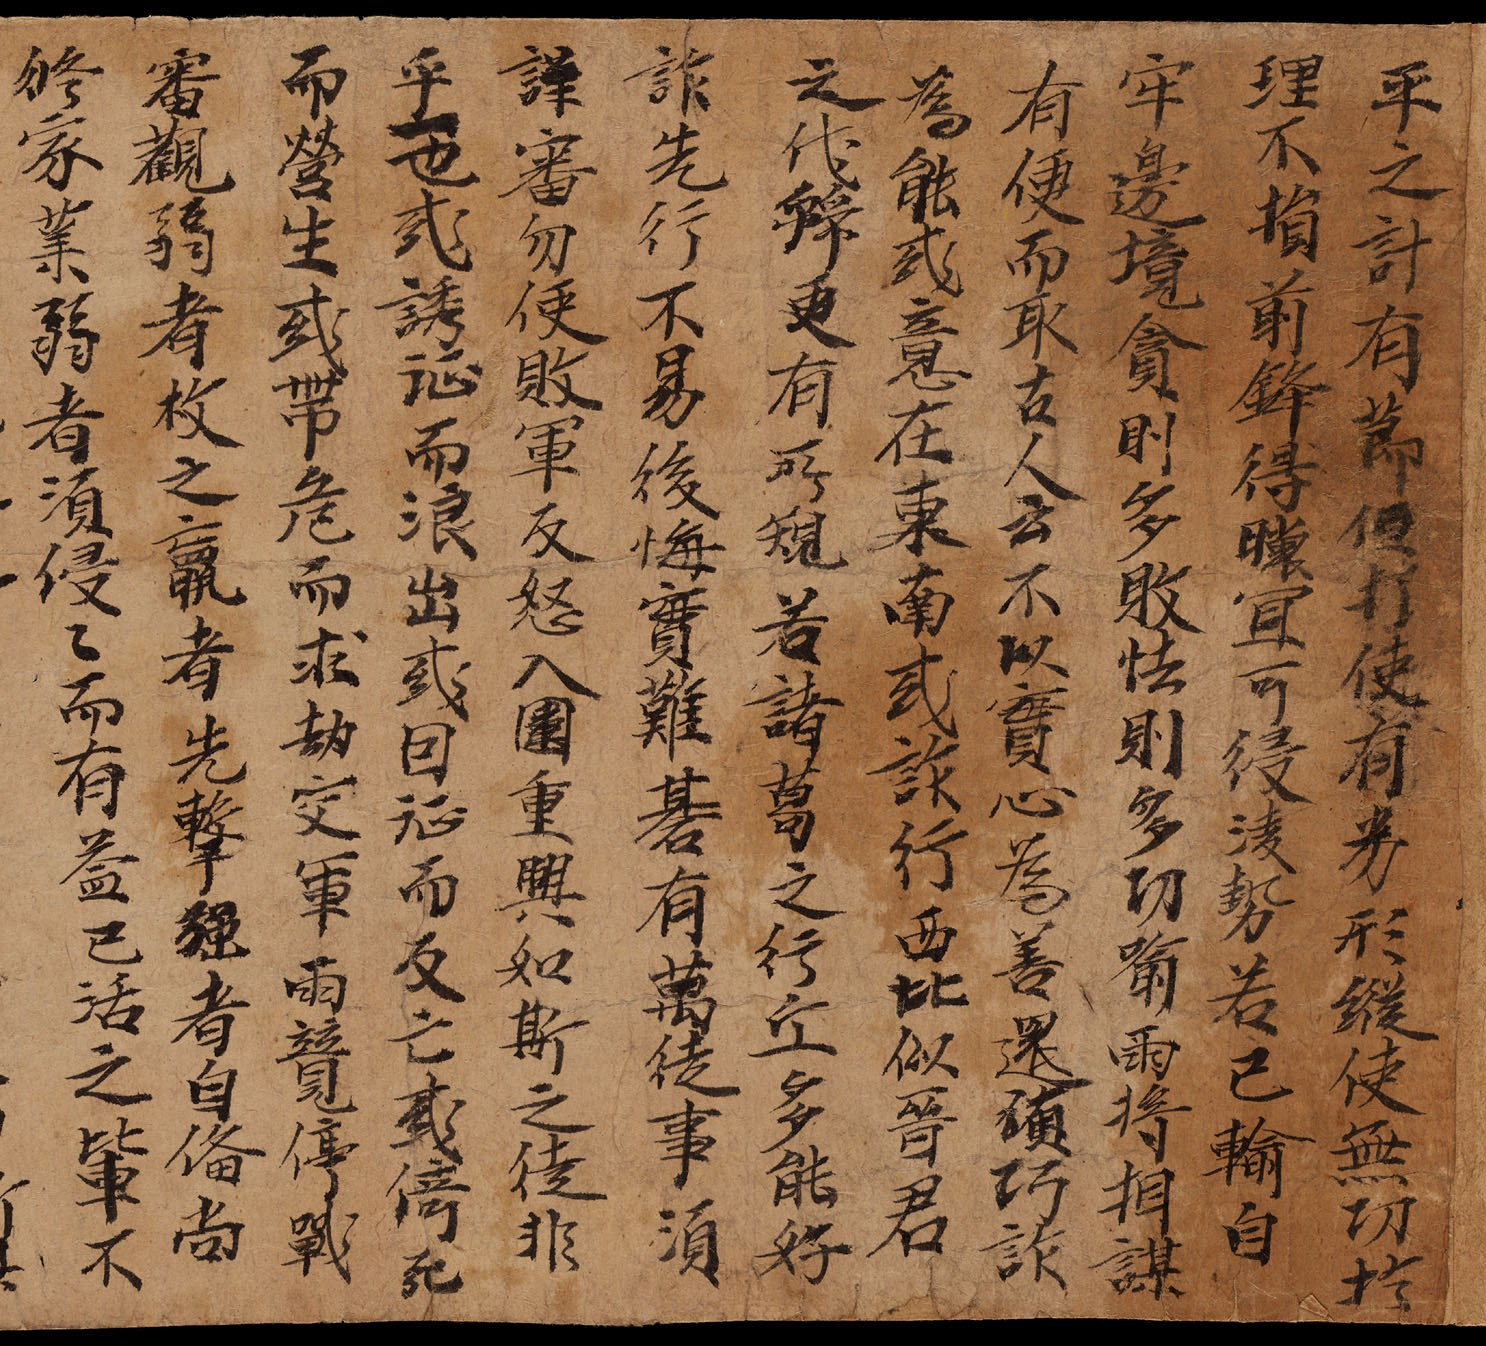 File British Library Dunhuang Go Wikimedia: ancient china calligraphy